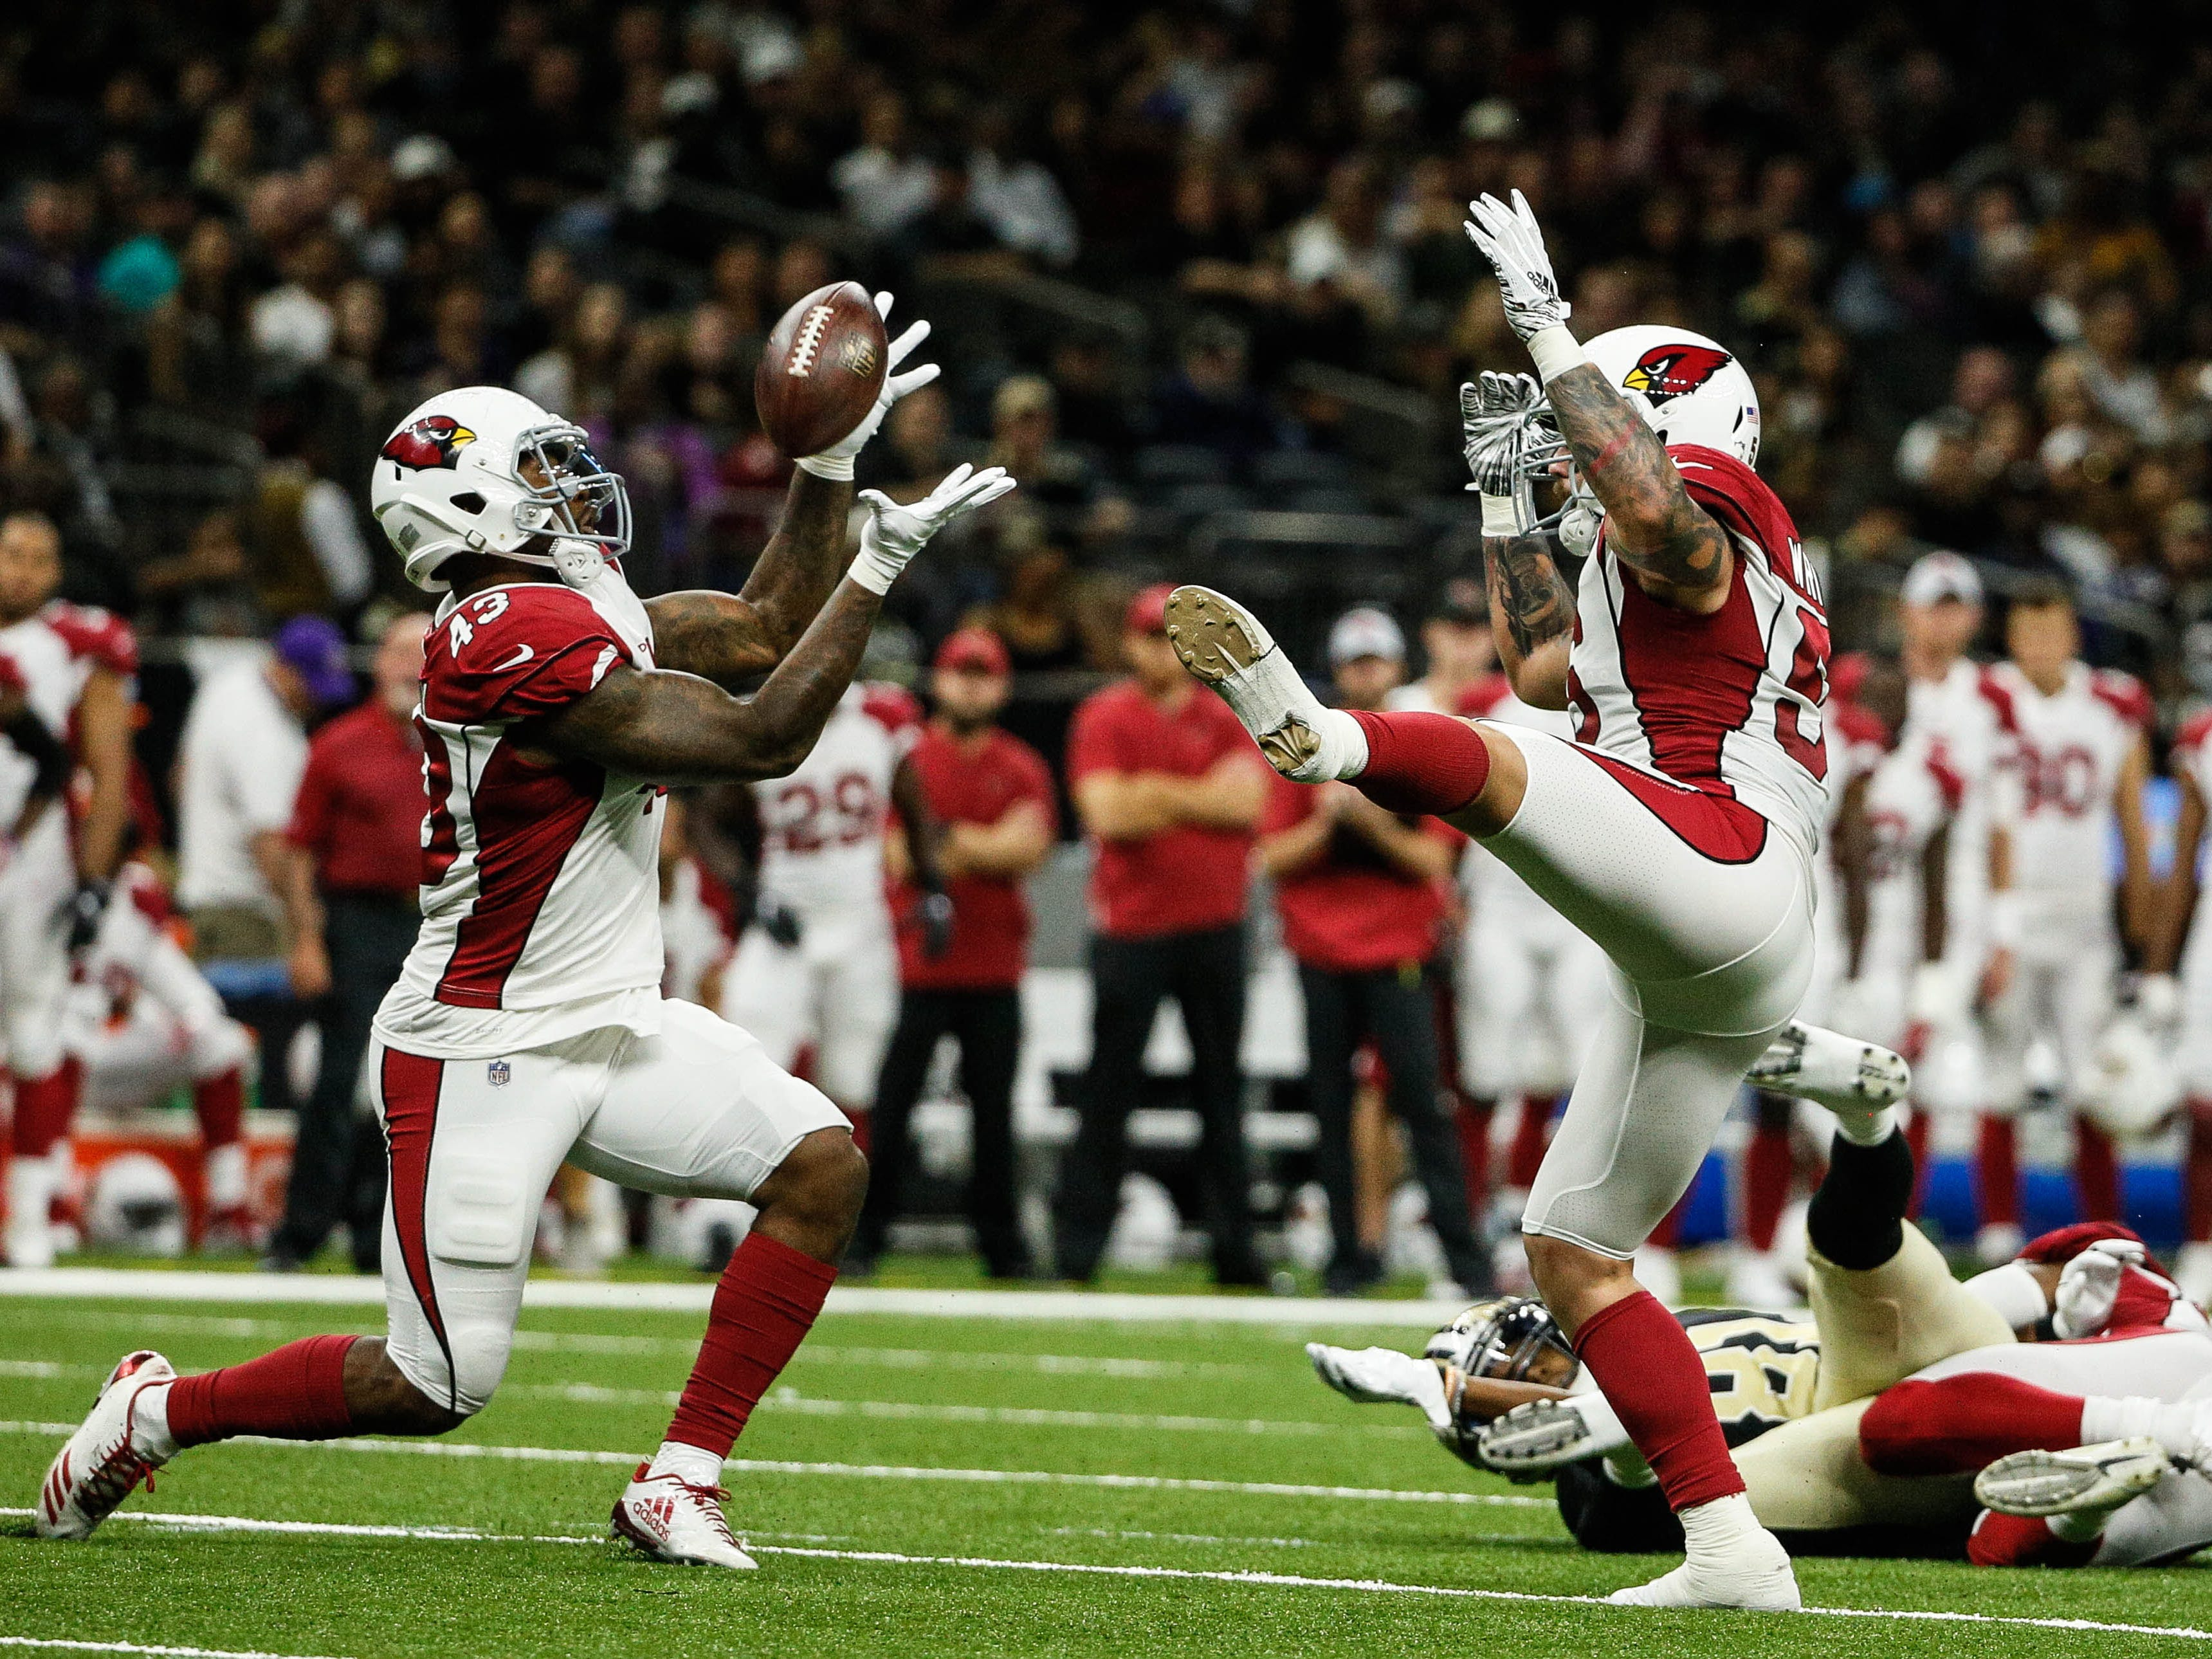 Aug 17, 2018: Arizona Cardinals linebacker Haason Reddick (43) intercepts a pass during the first quarter of a preseason game against the New Orleans Saints at the Mercedes-Benz Superdome.